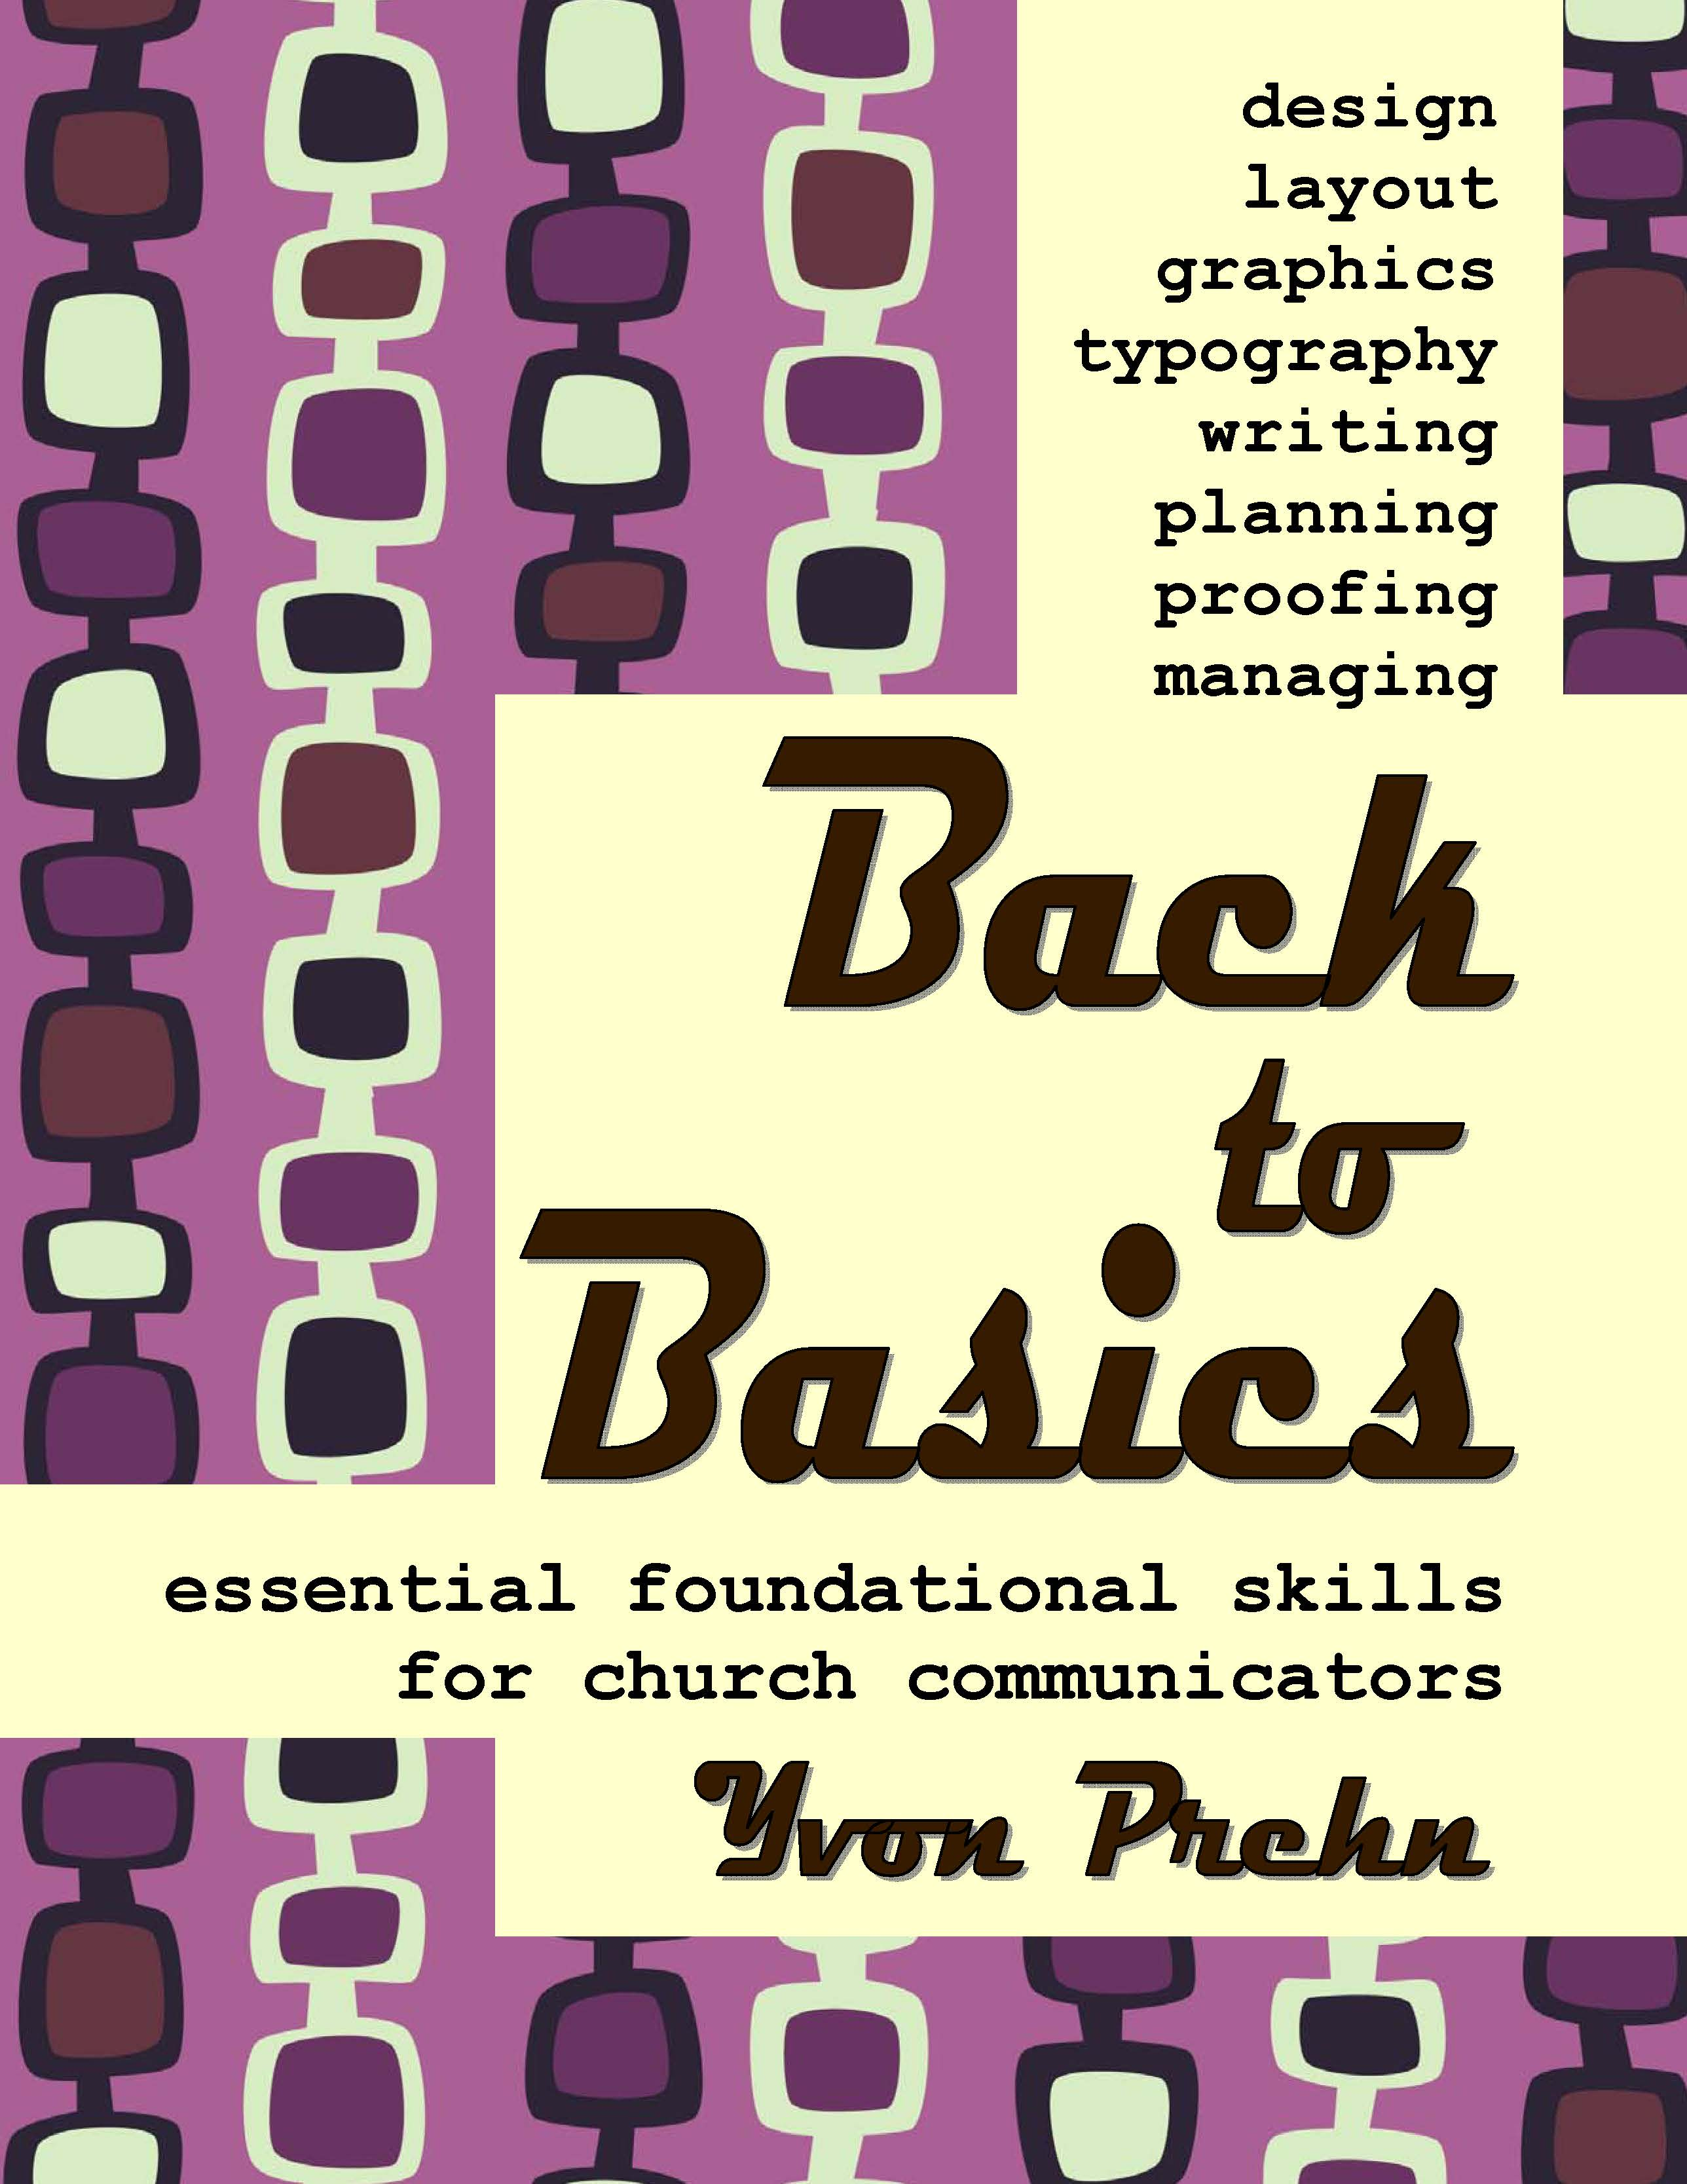 Back to Basics, essential foundational skills for church communicators by Yvon Prehn